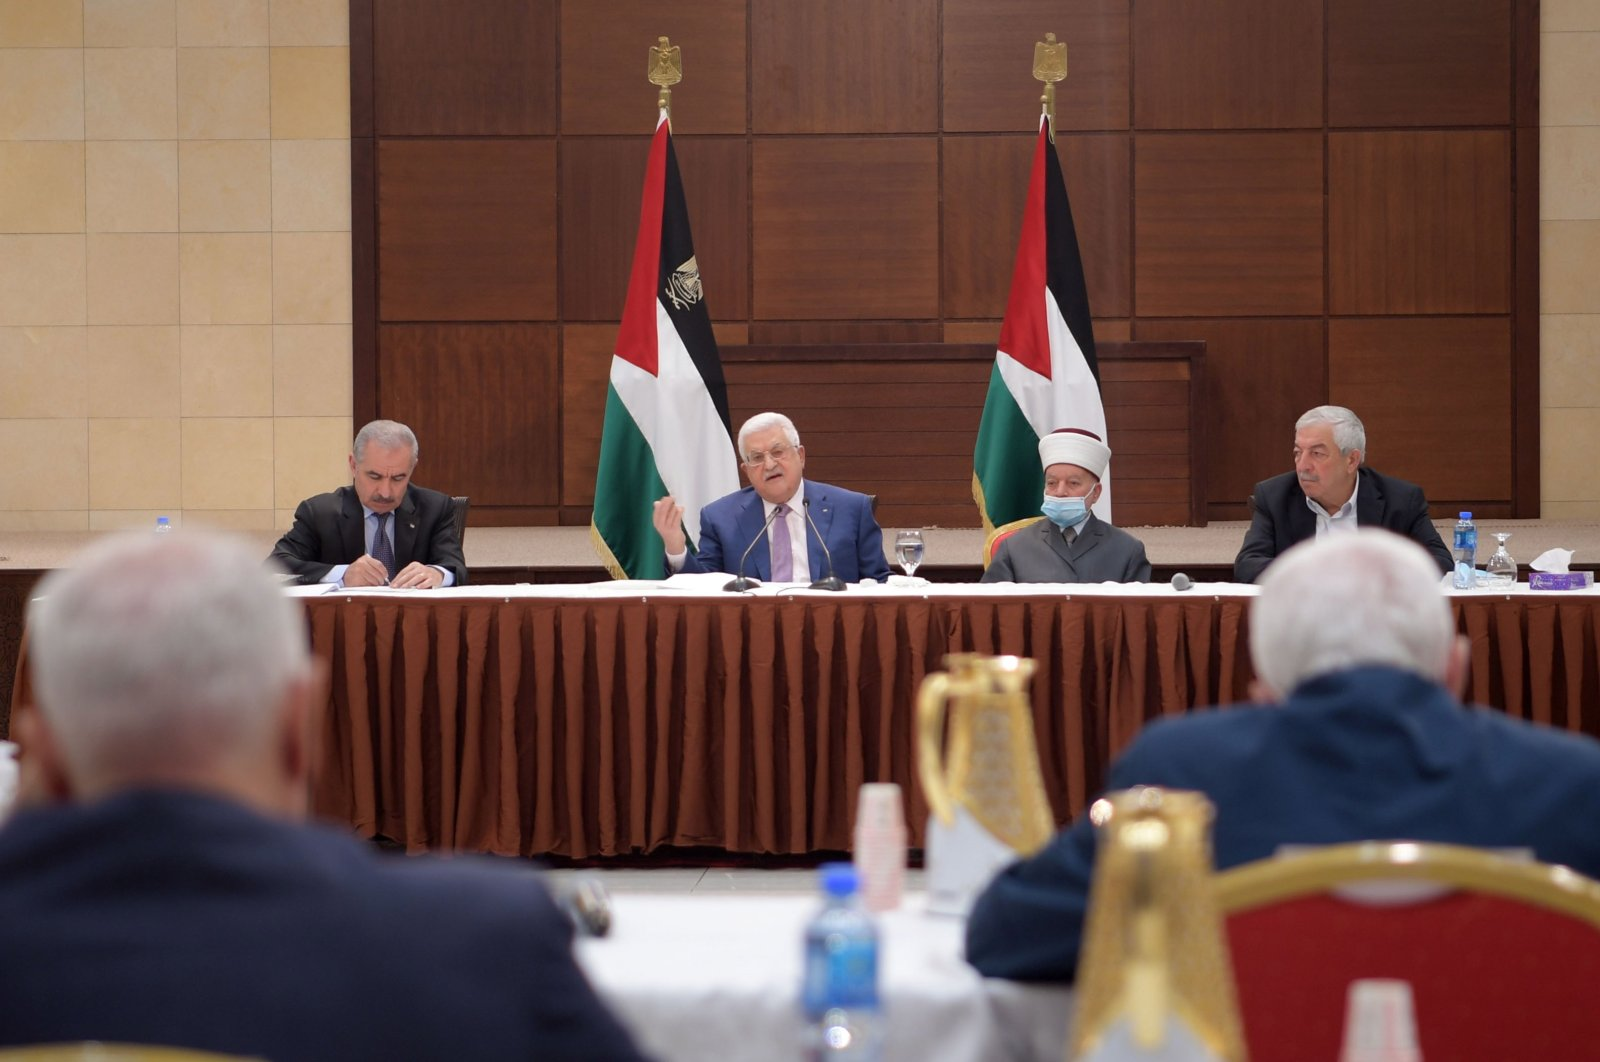 Palestinian President Mahmoud Abbas (C) heading a meeting for the Palestinian leadership, Ramallah, West Bank, Palestine, April 29, 2021. (Handout photo made available by the Palestinian president's office/EPA Photo)